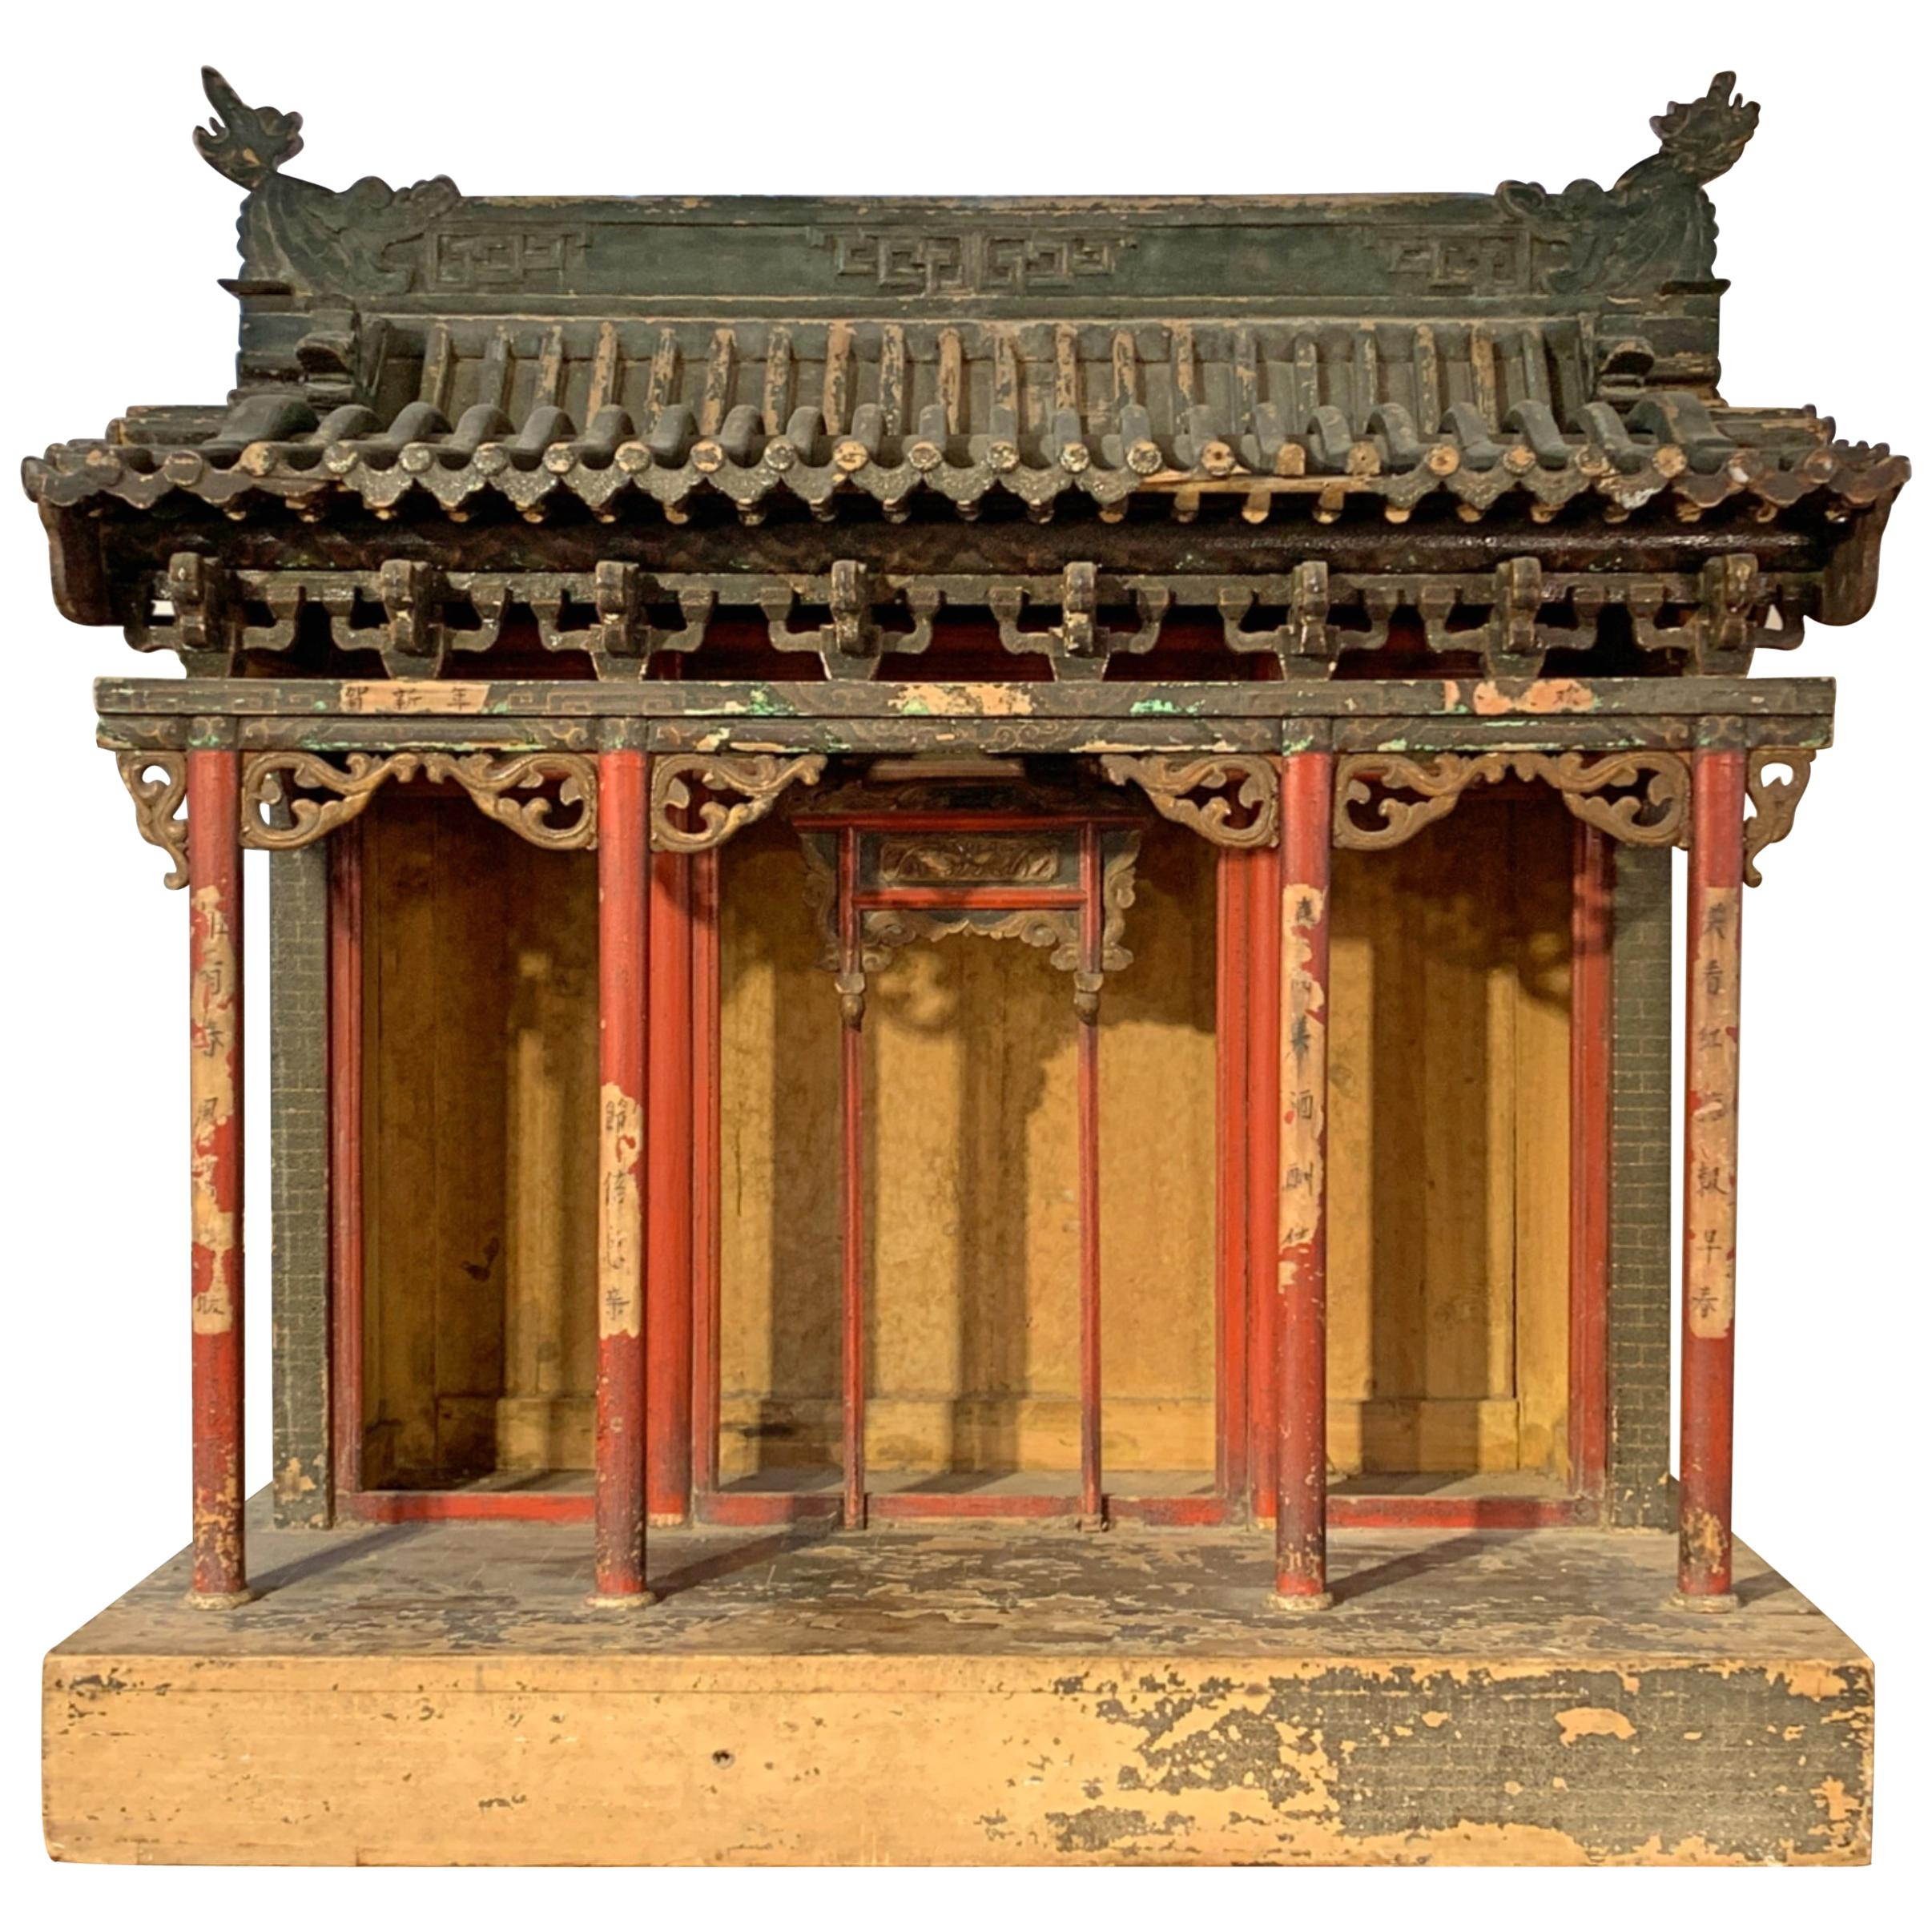 Large Chinese Ancestral Hall Architectural Model, Qing Dynasty, 18th Century